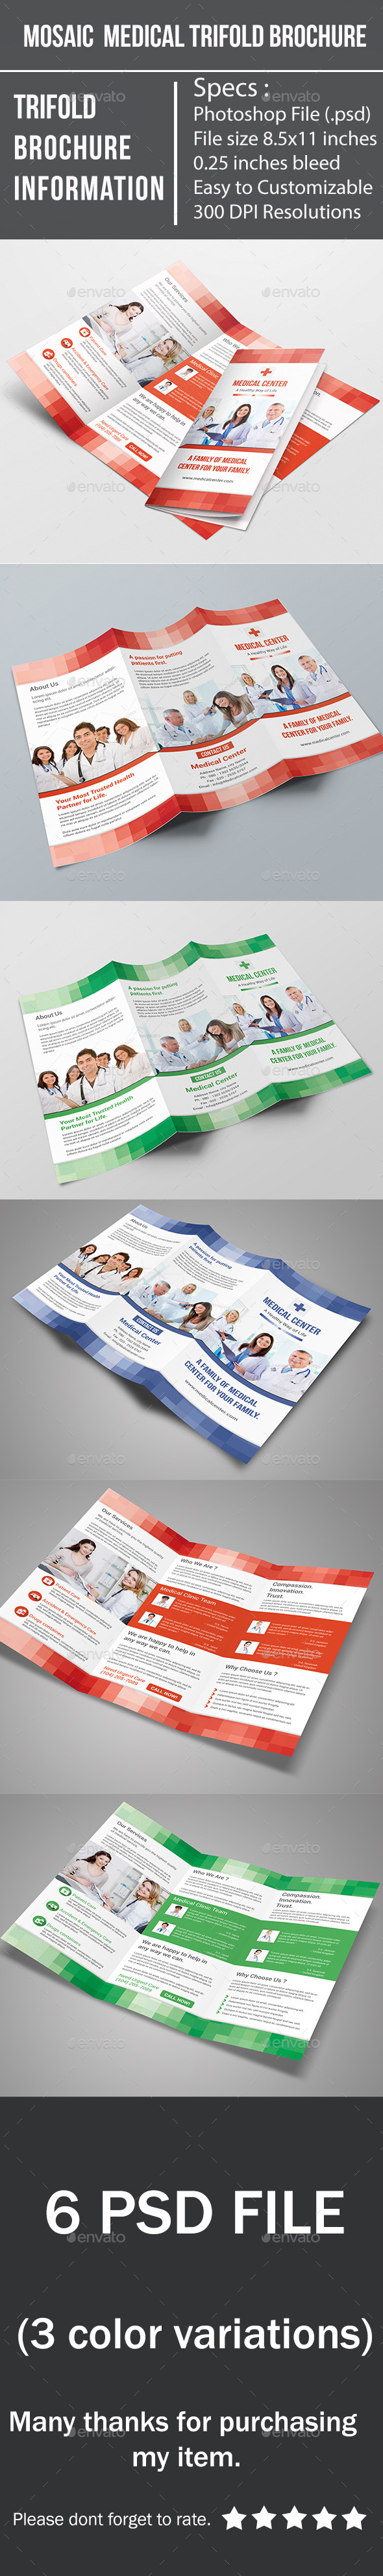 GraphicRiver Mosaic Medical Trifold Brochure 9338814